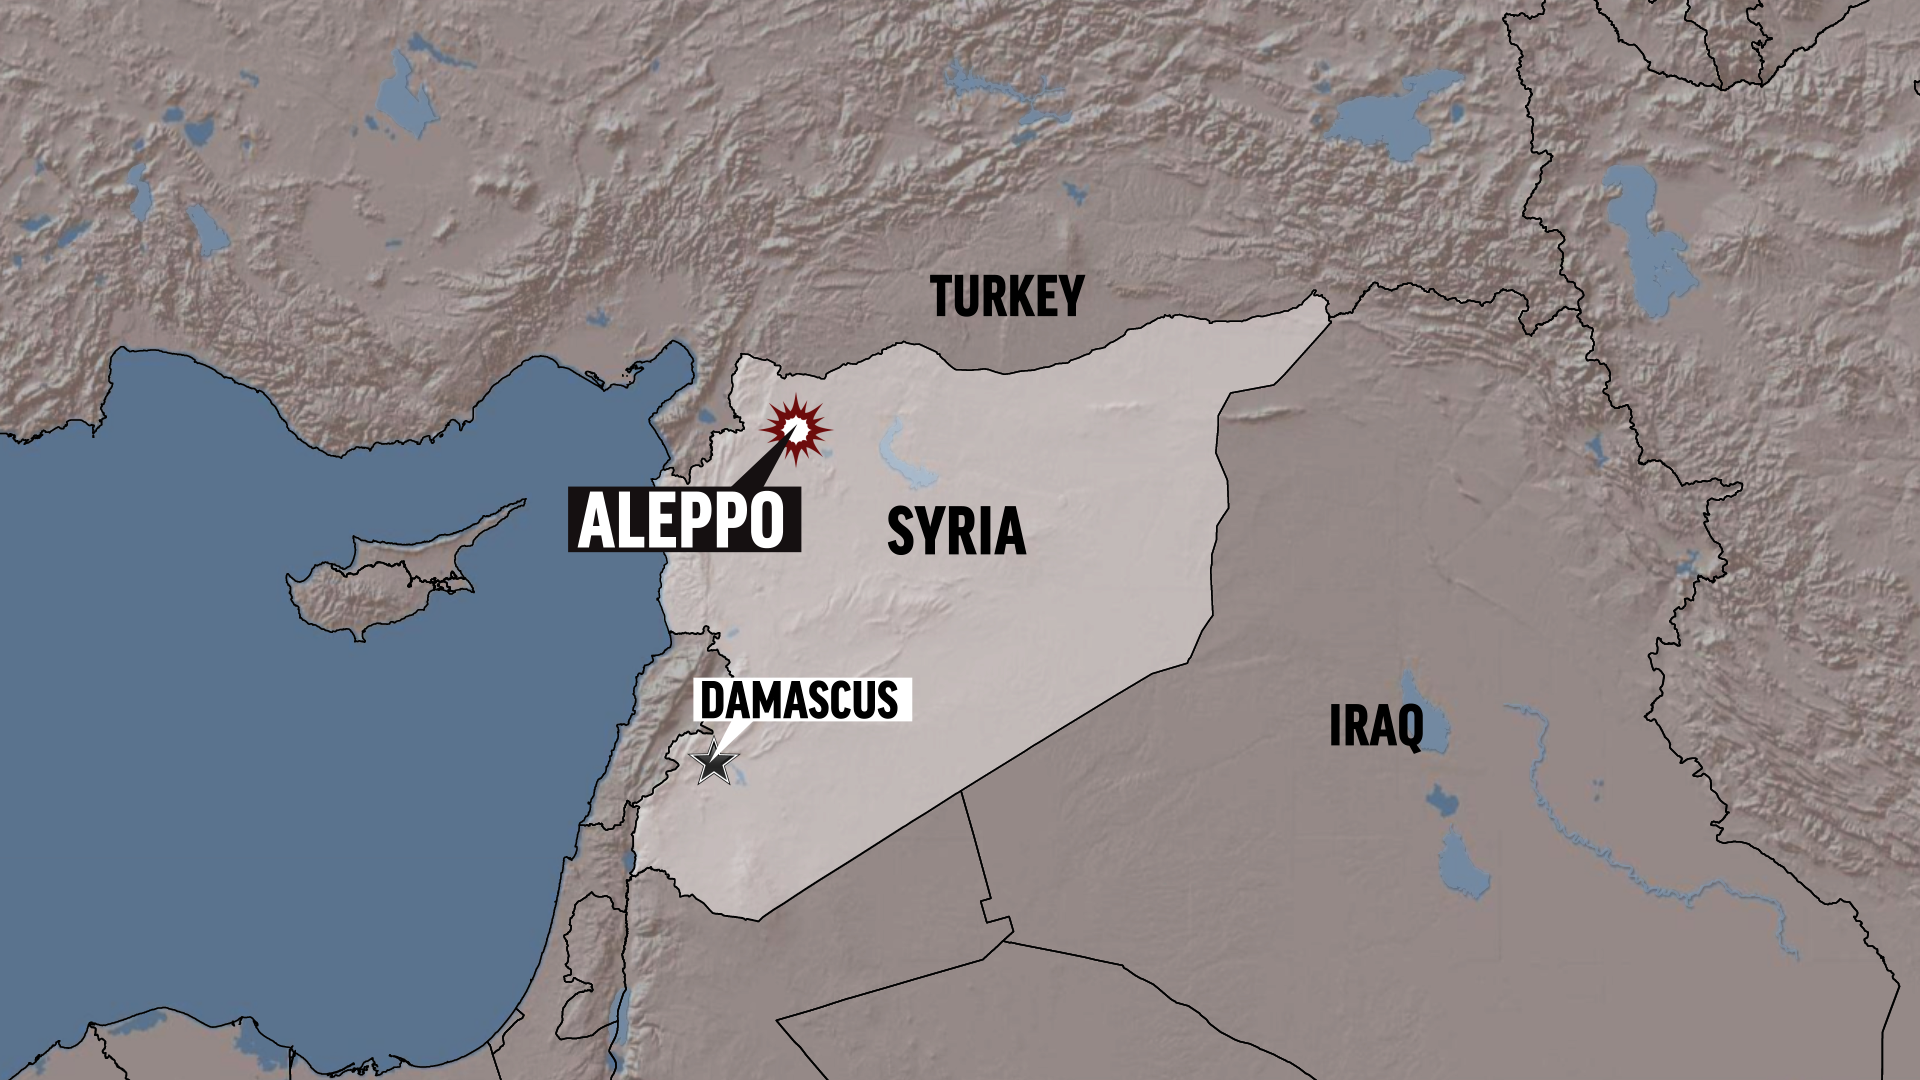 An explosion on March 29 hit a U.S.-led coalition vehicle, killing an American soldier in Manbij town in Syria. Manbij sits about 59 miles northeast of Aleppo.